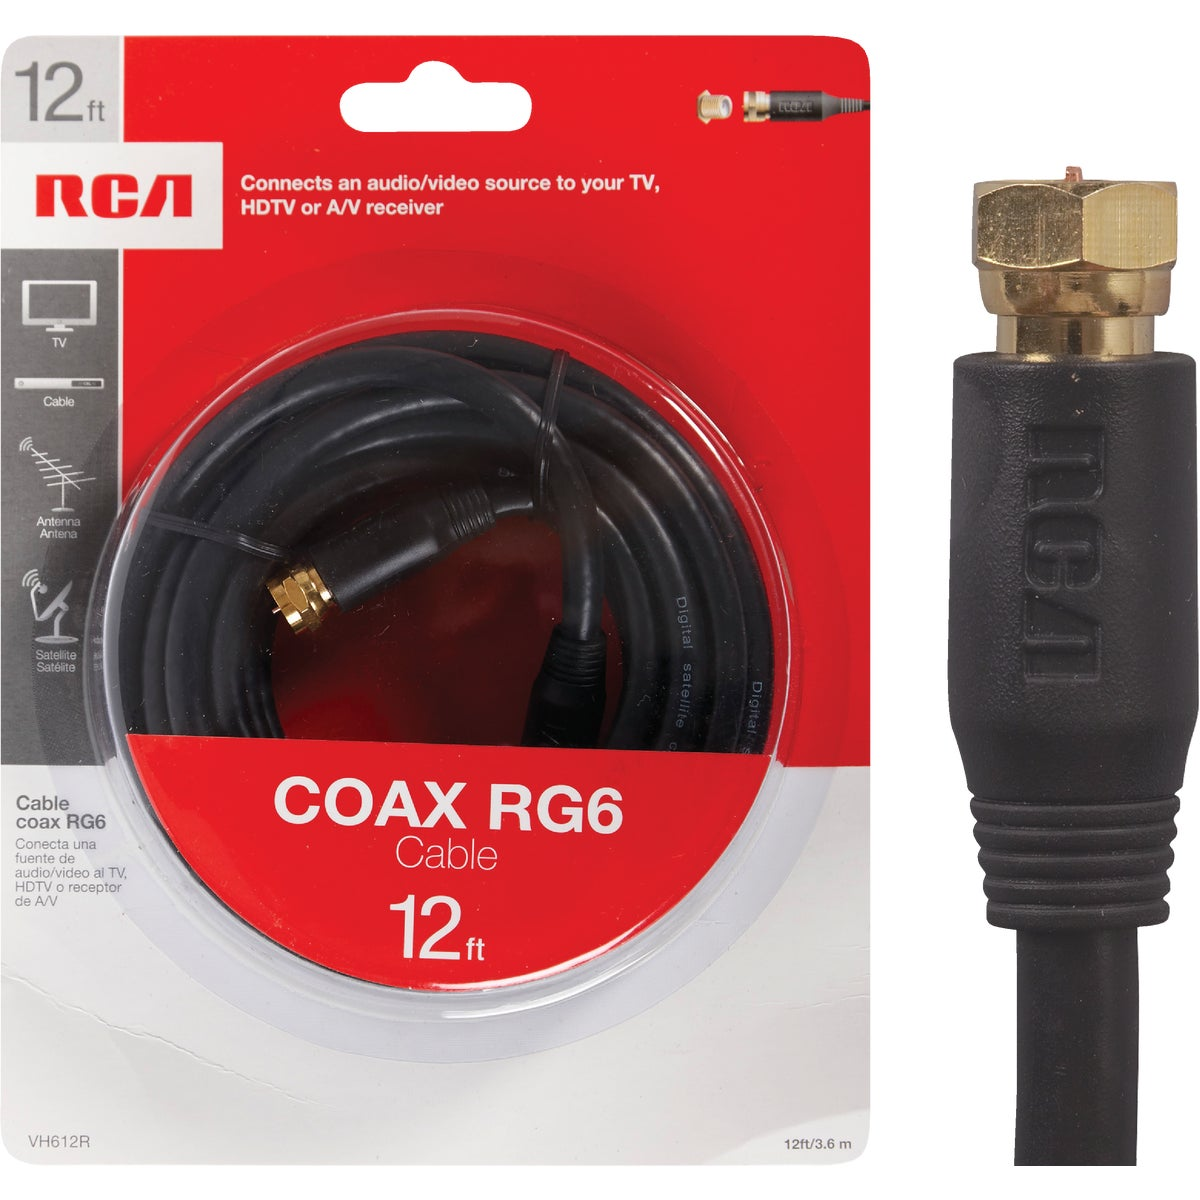 12' RG6 BLK COAX CABLE - VH612RV by Audiovox Accessories